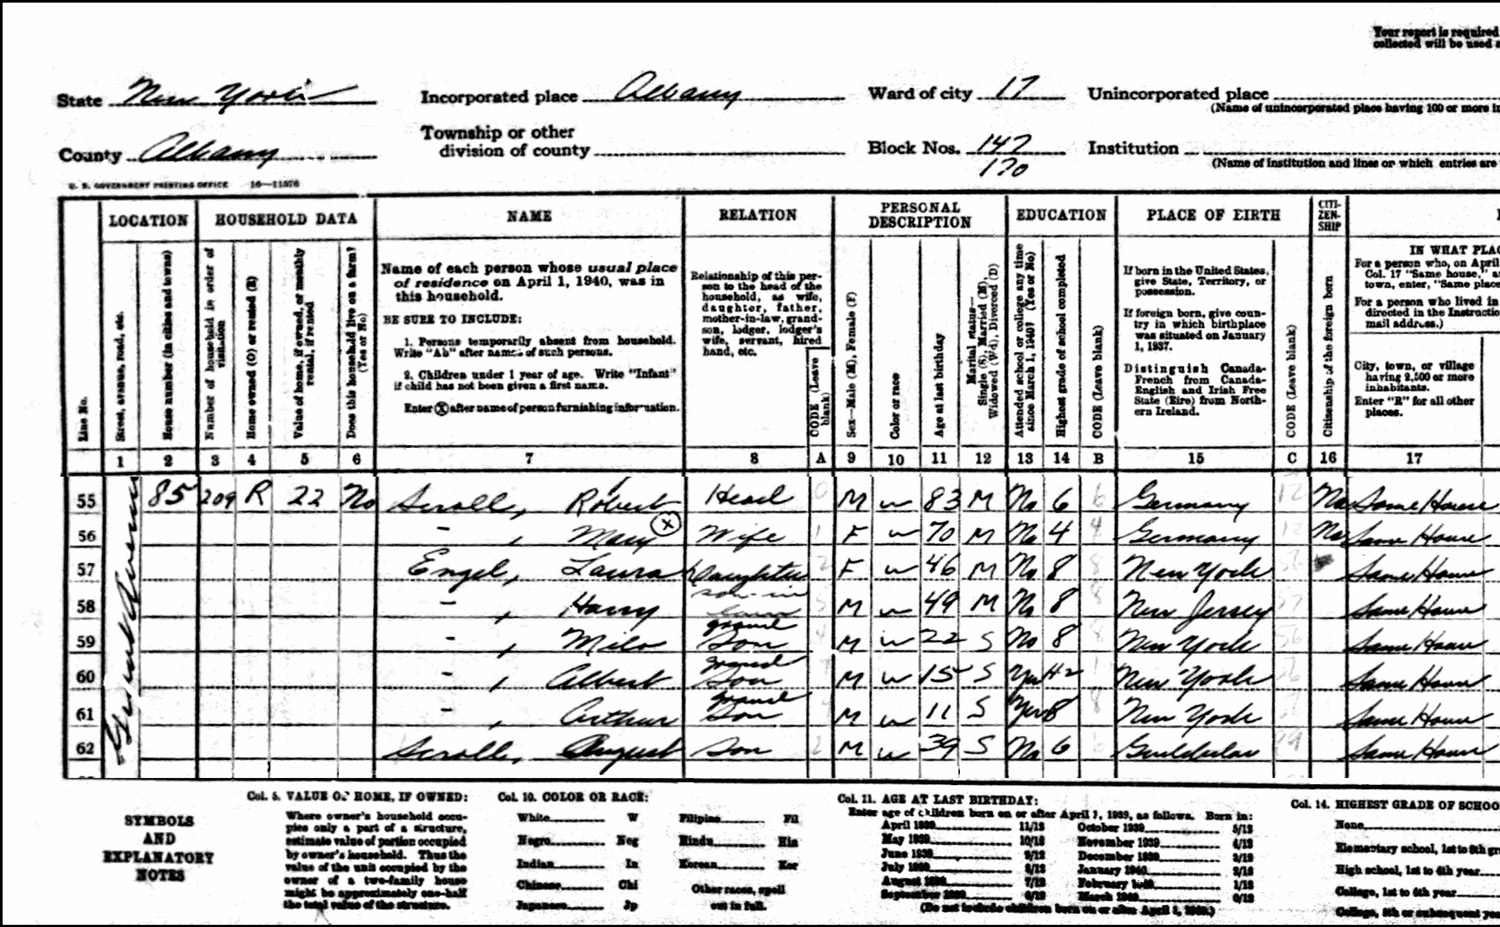 1940 US Federal Census Record for the Robert Schroll Family (Left)